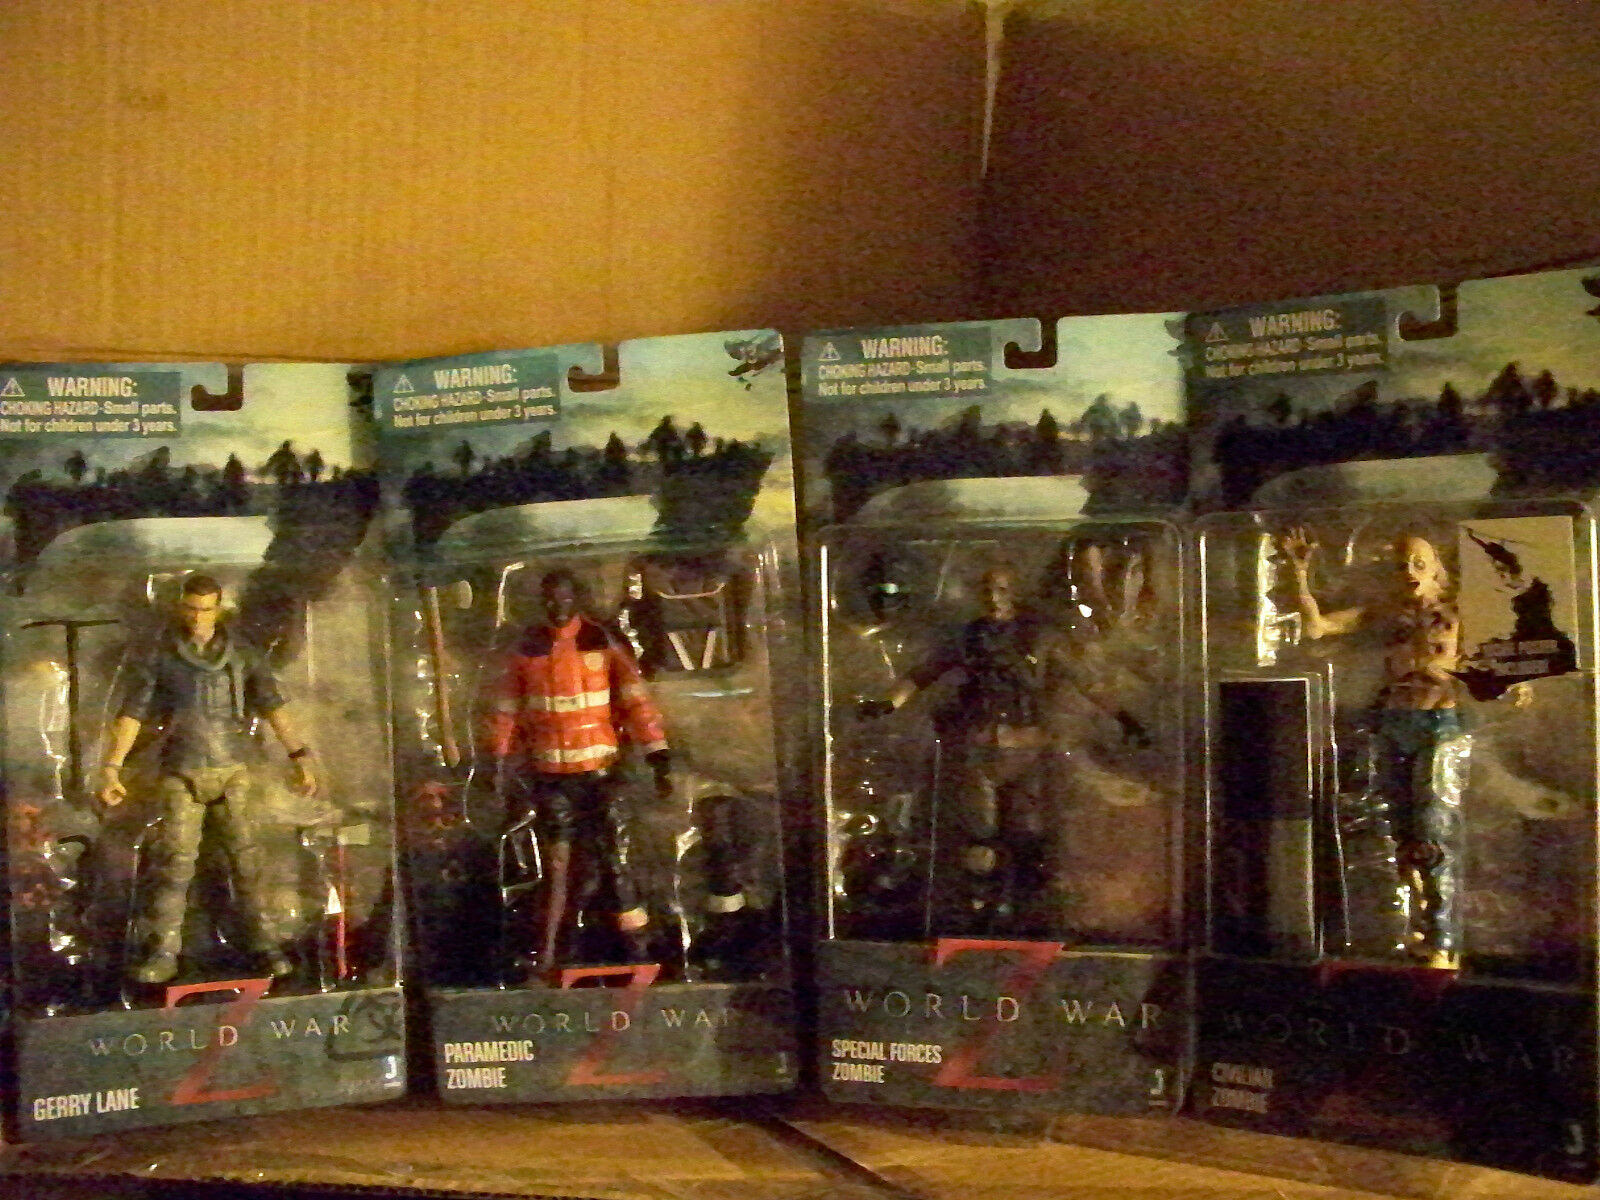 World War Z Action Figures (Complete Set) Set) Set) ce102e